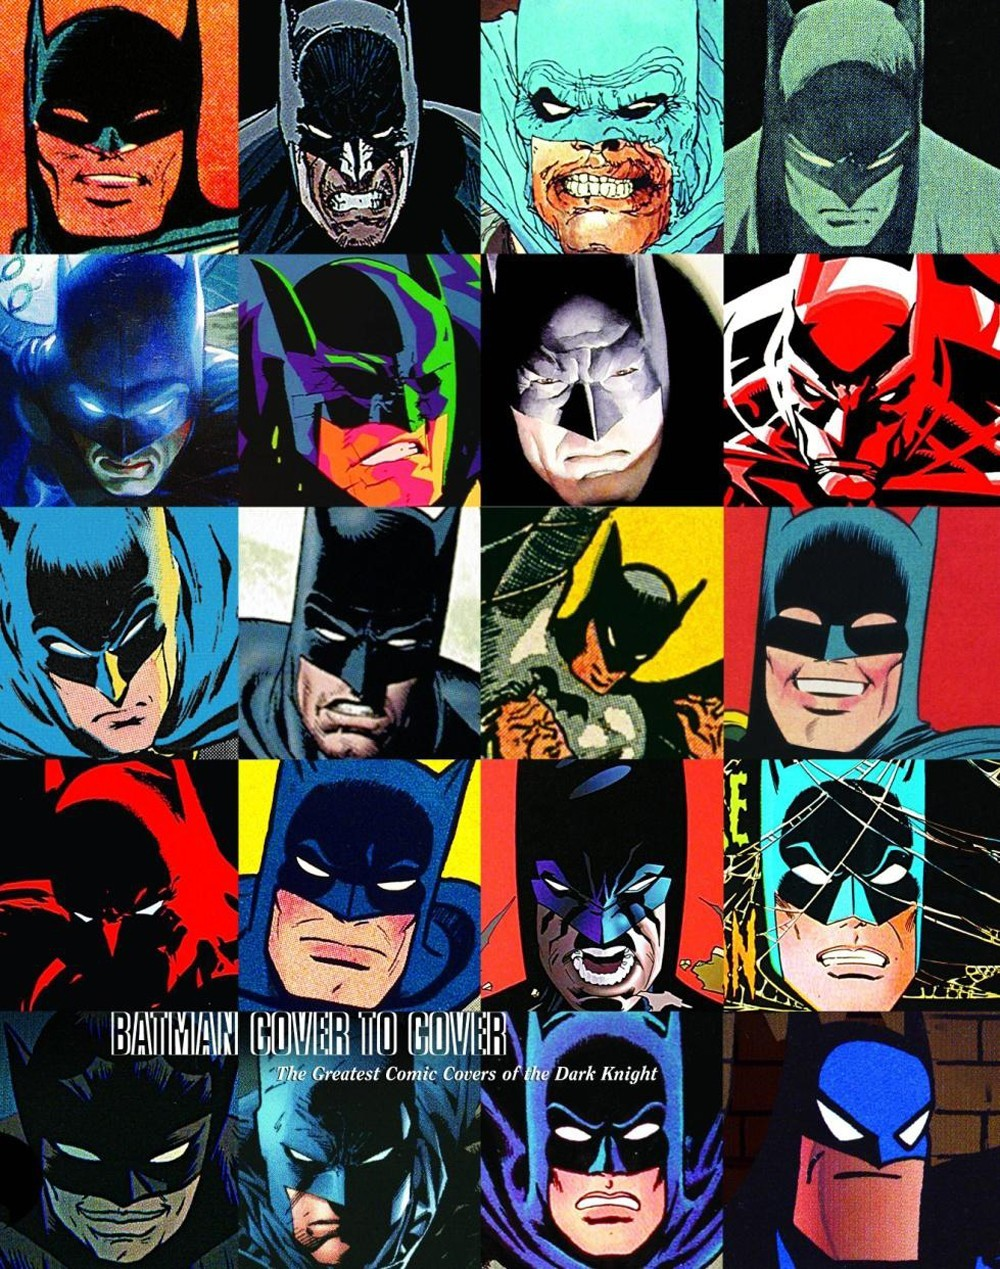 BATMAN COVER TO COVER